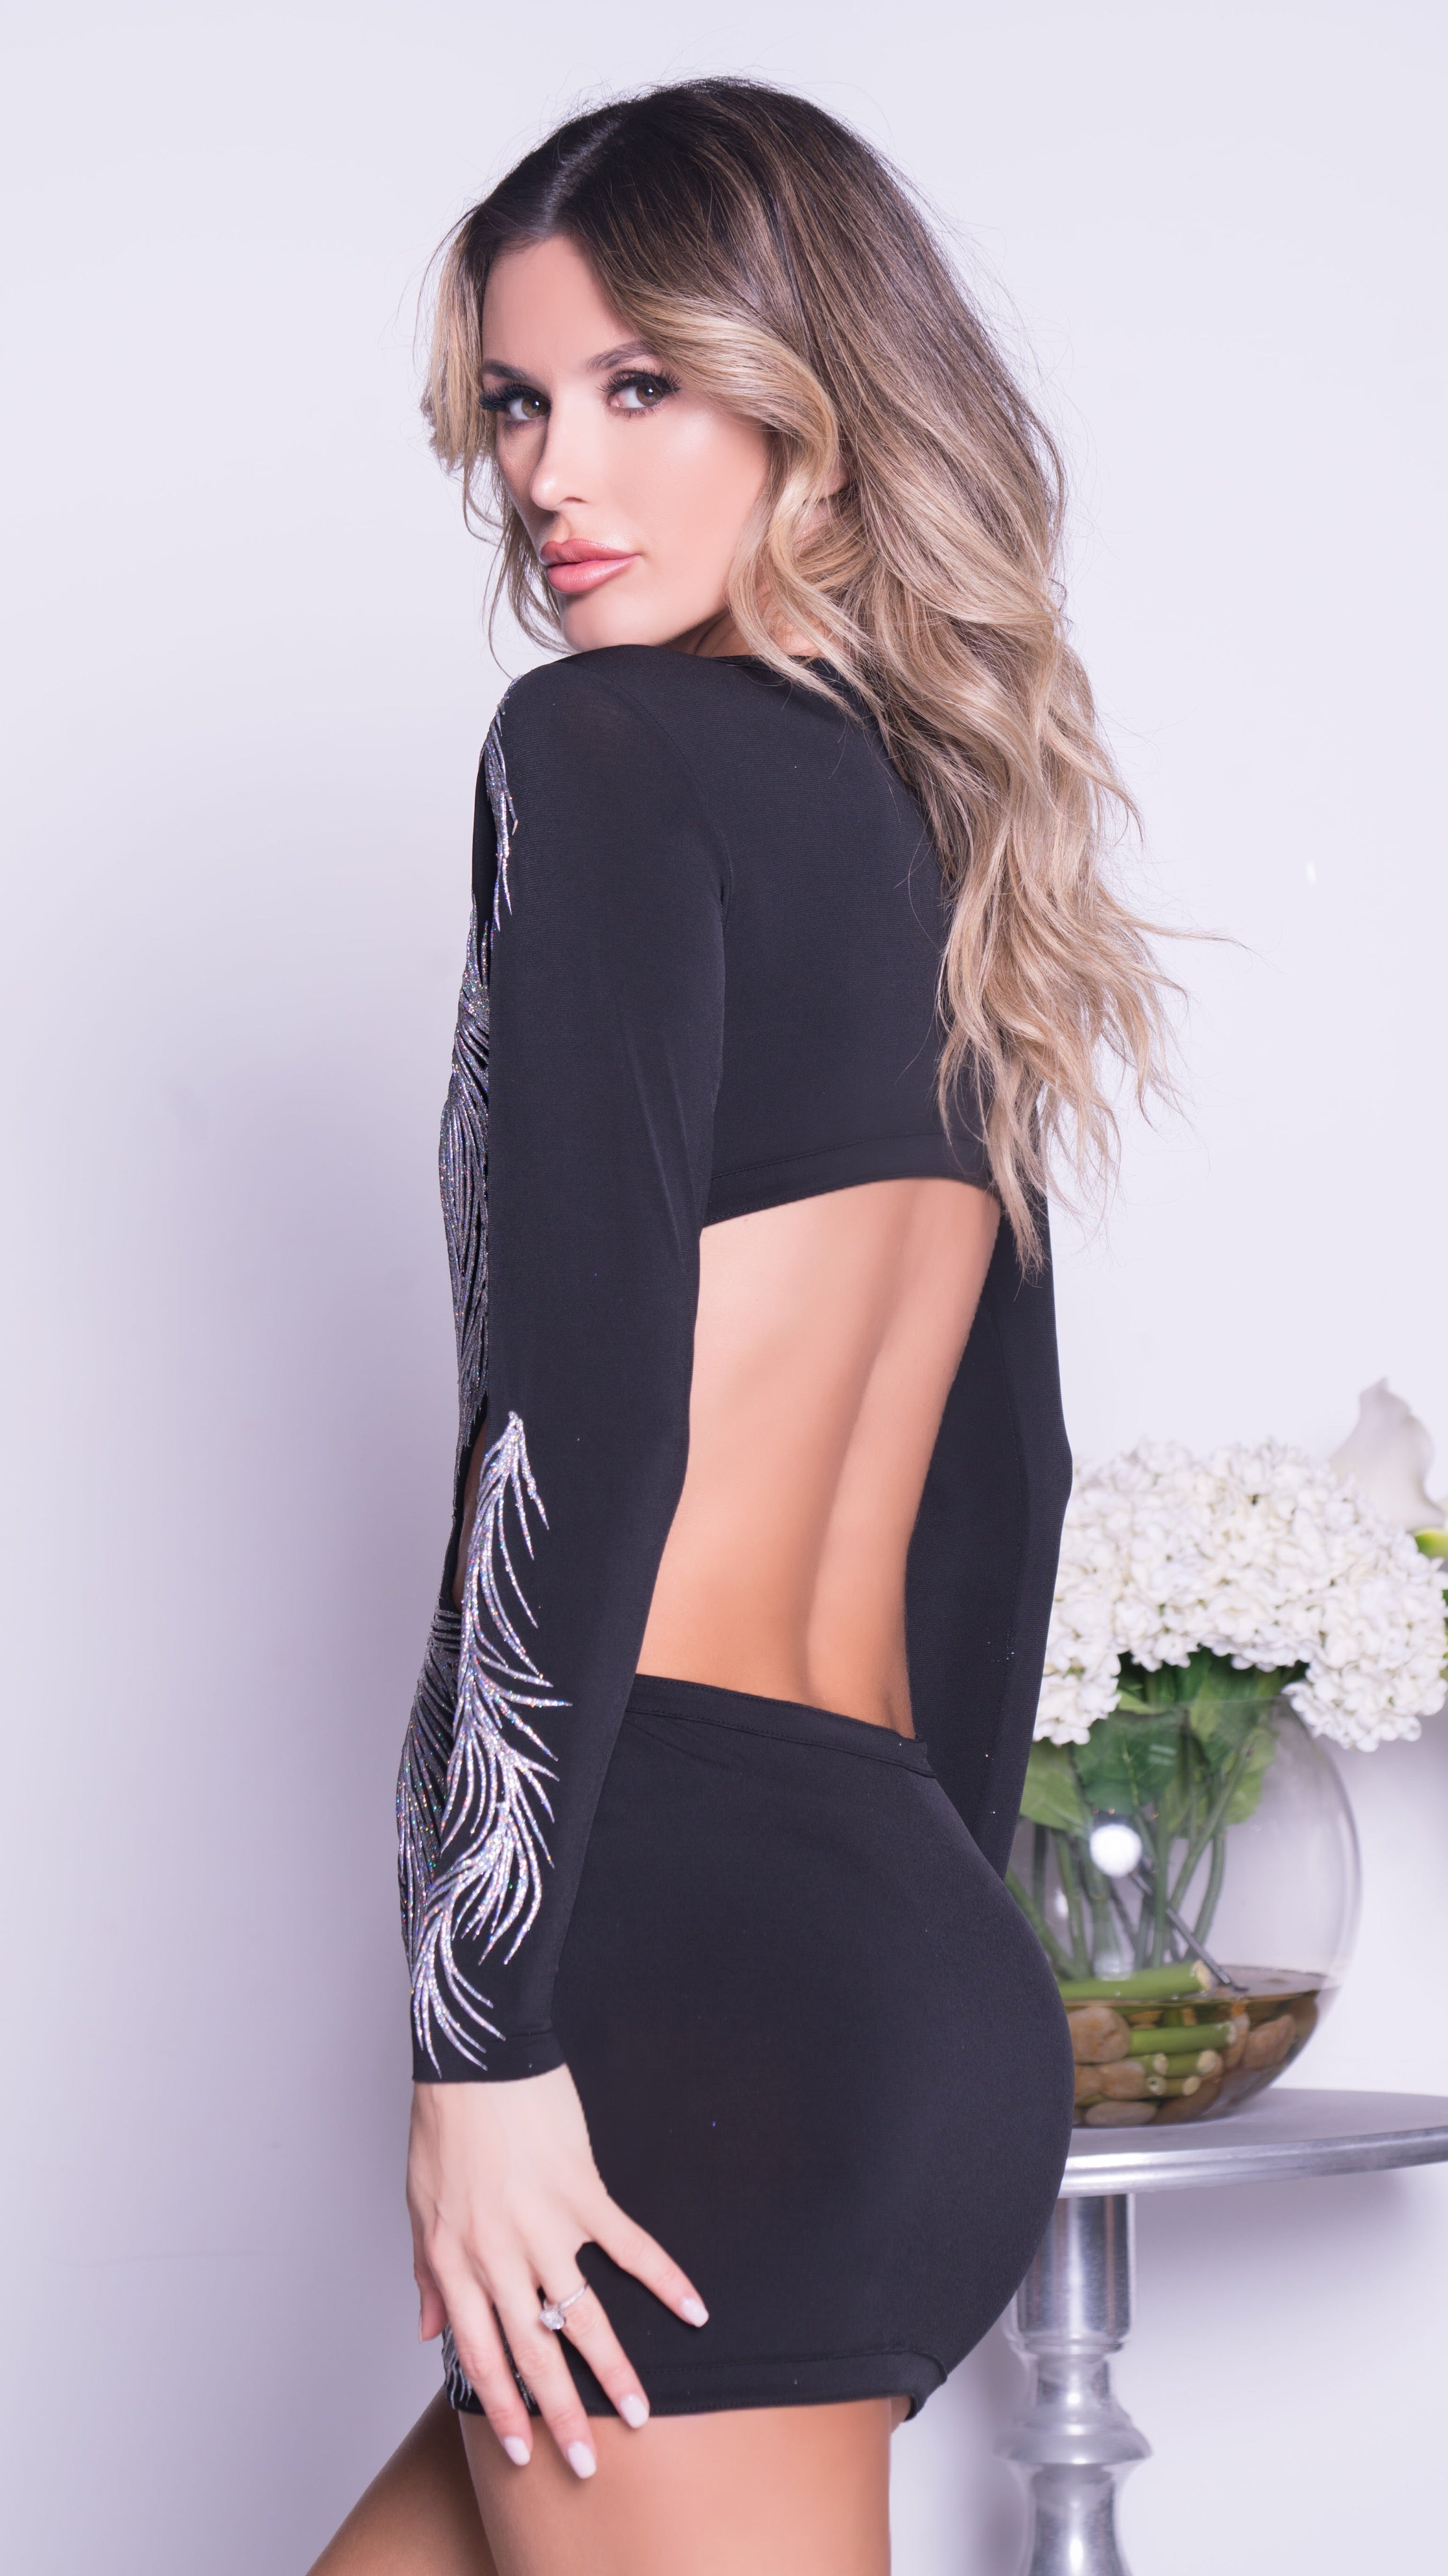 OSNARE DRESS IN BLACK WITH SILVER